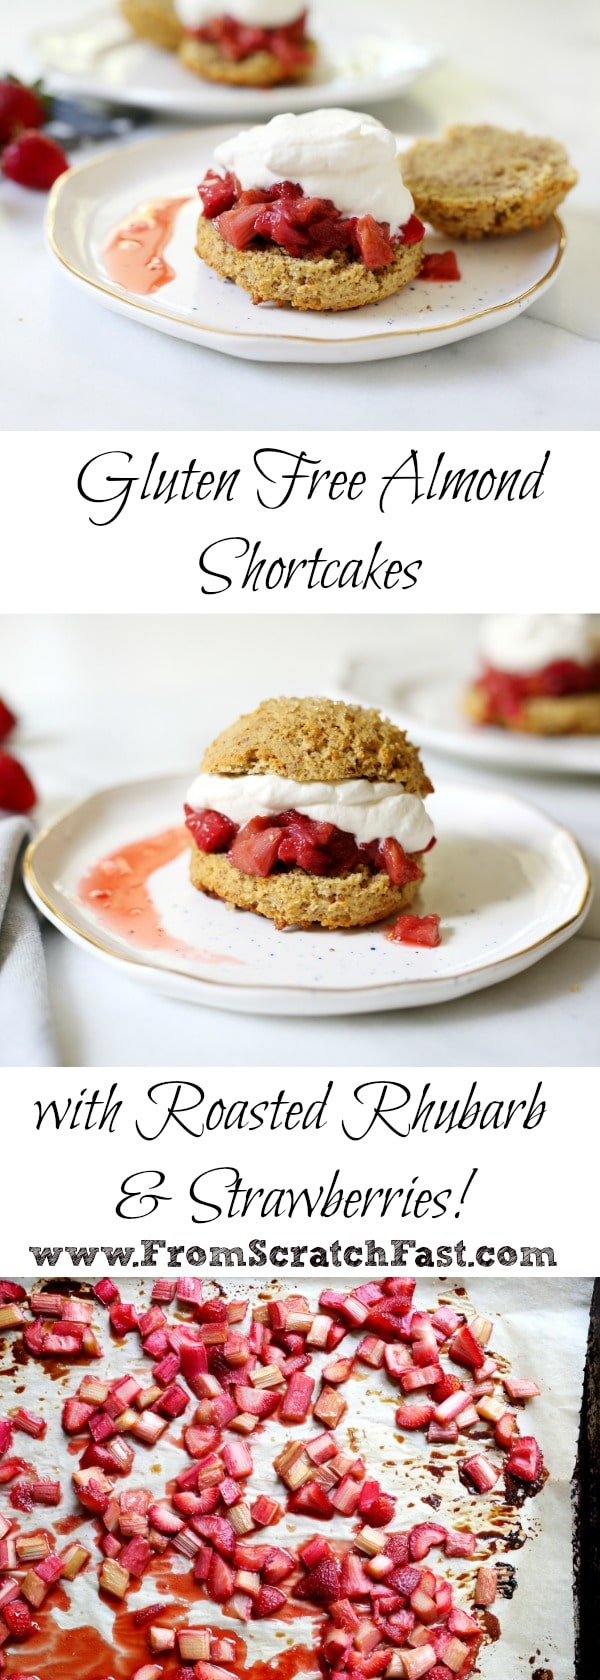 These lightly sweetened gluten free shortcakes are almond-scented and supremely tender, perfect with roasted rhubarb, strawberries and billows of whipped cream!